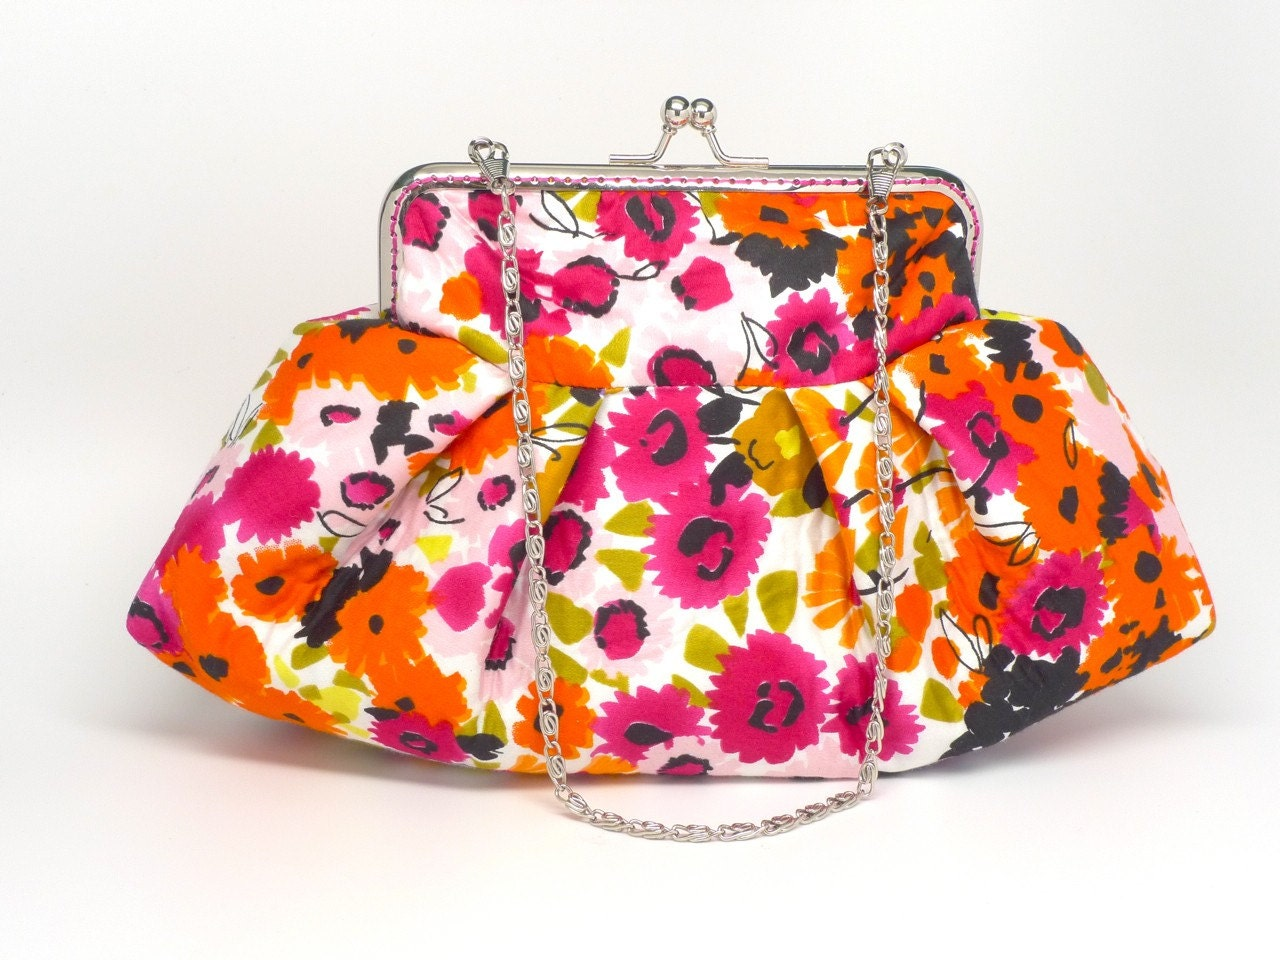 Cluth bag with colorful flowers printed silk